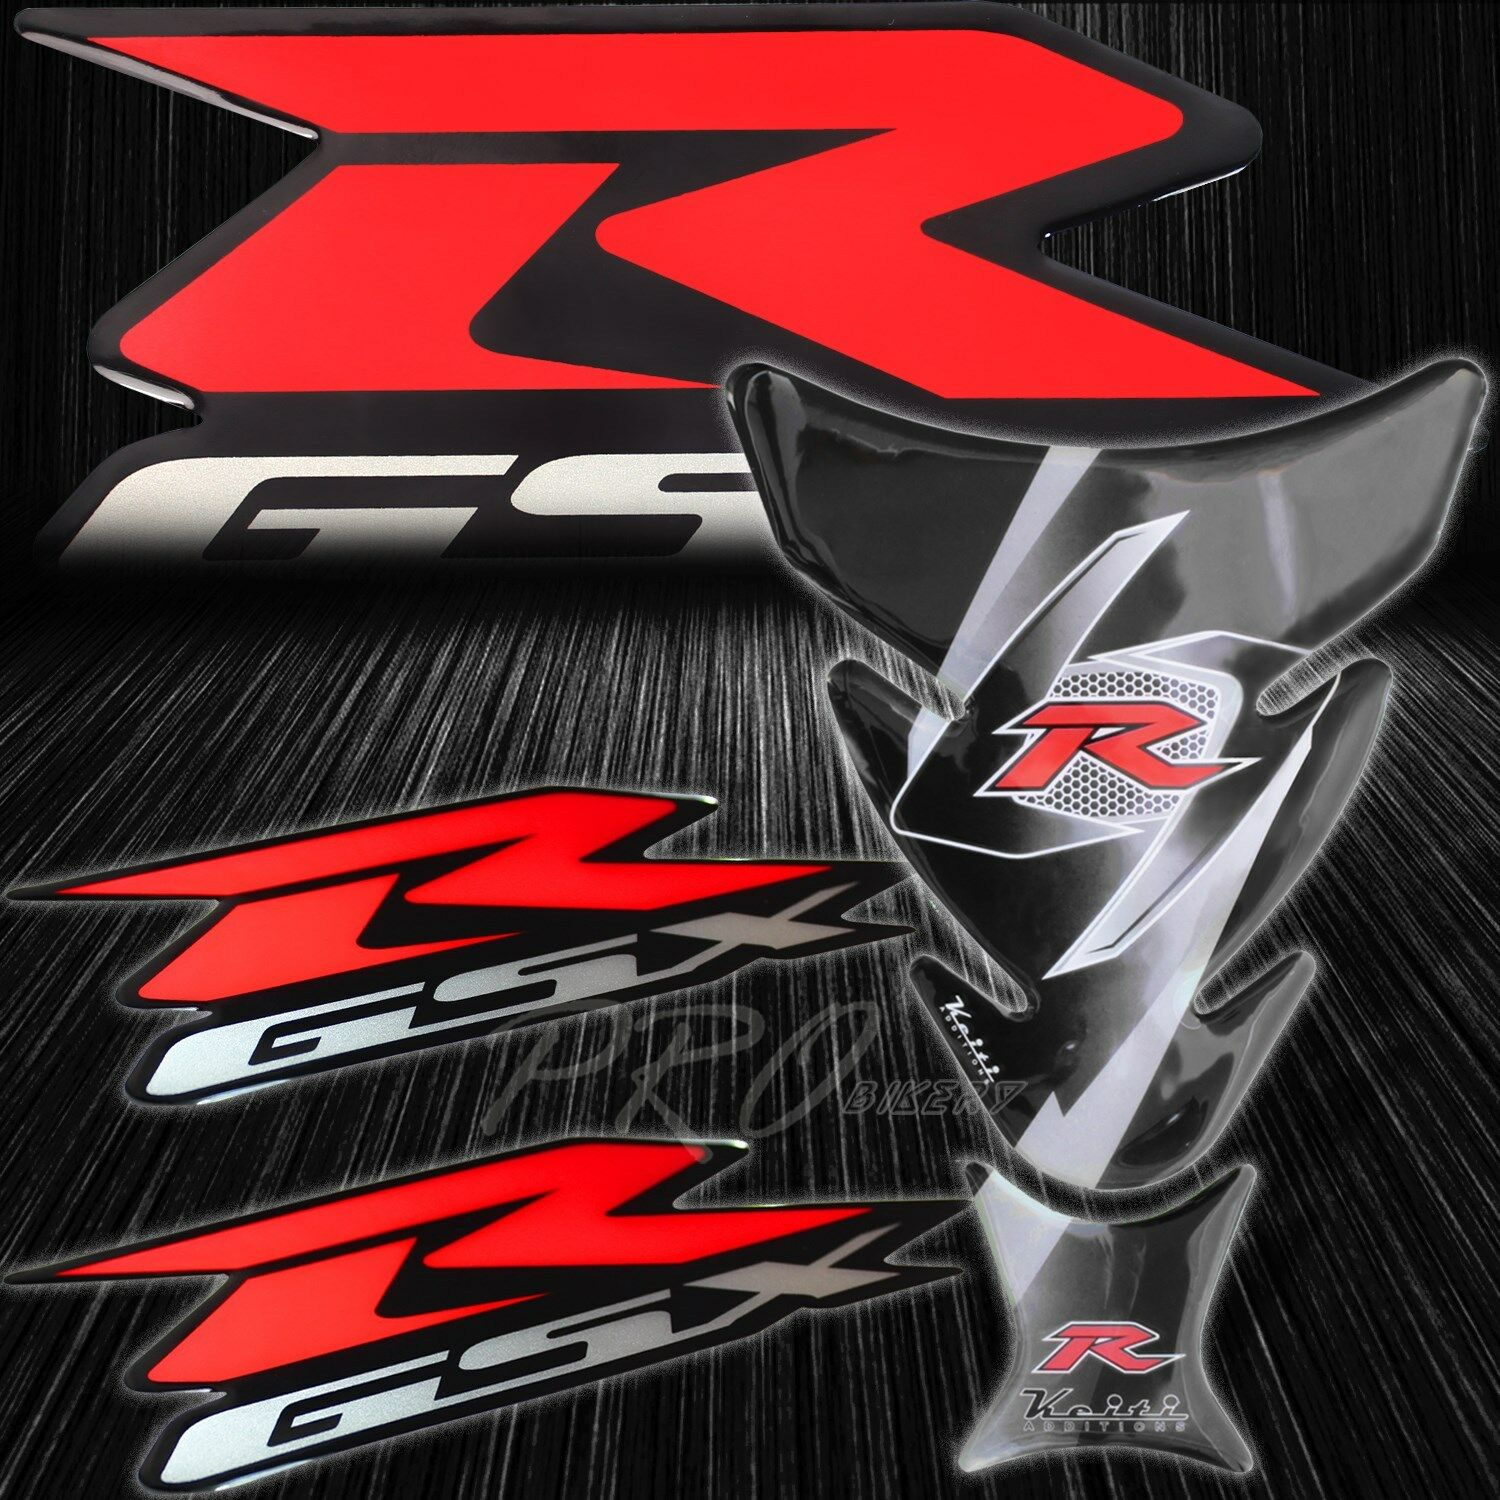 7.5 Real Carbon Fiber Fuel Gas Tank Protector Pad For GSXR GIXXER 750 600 1000